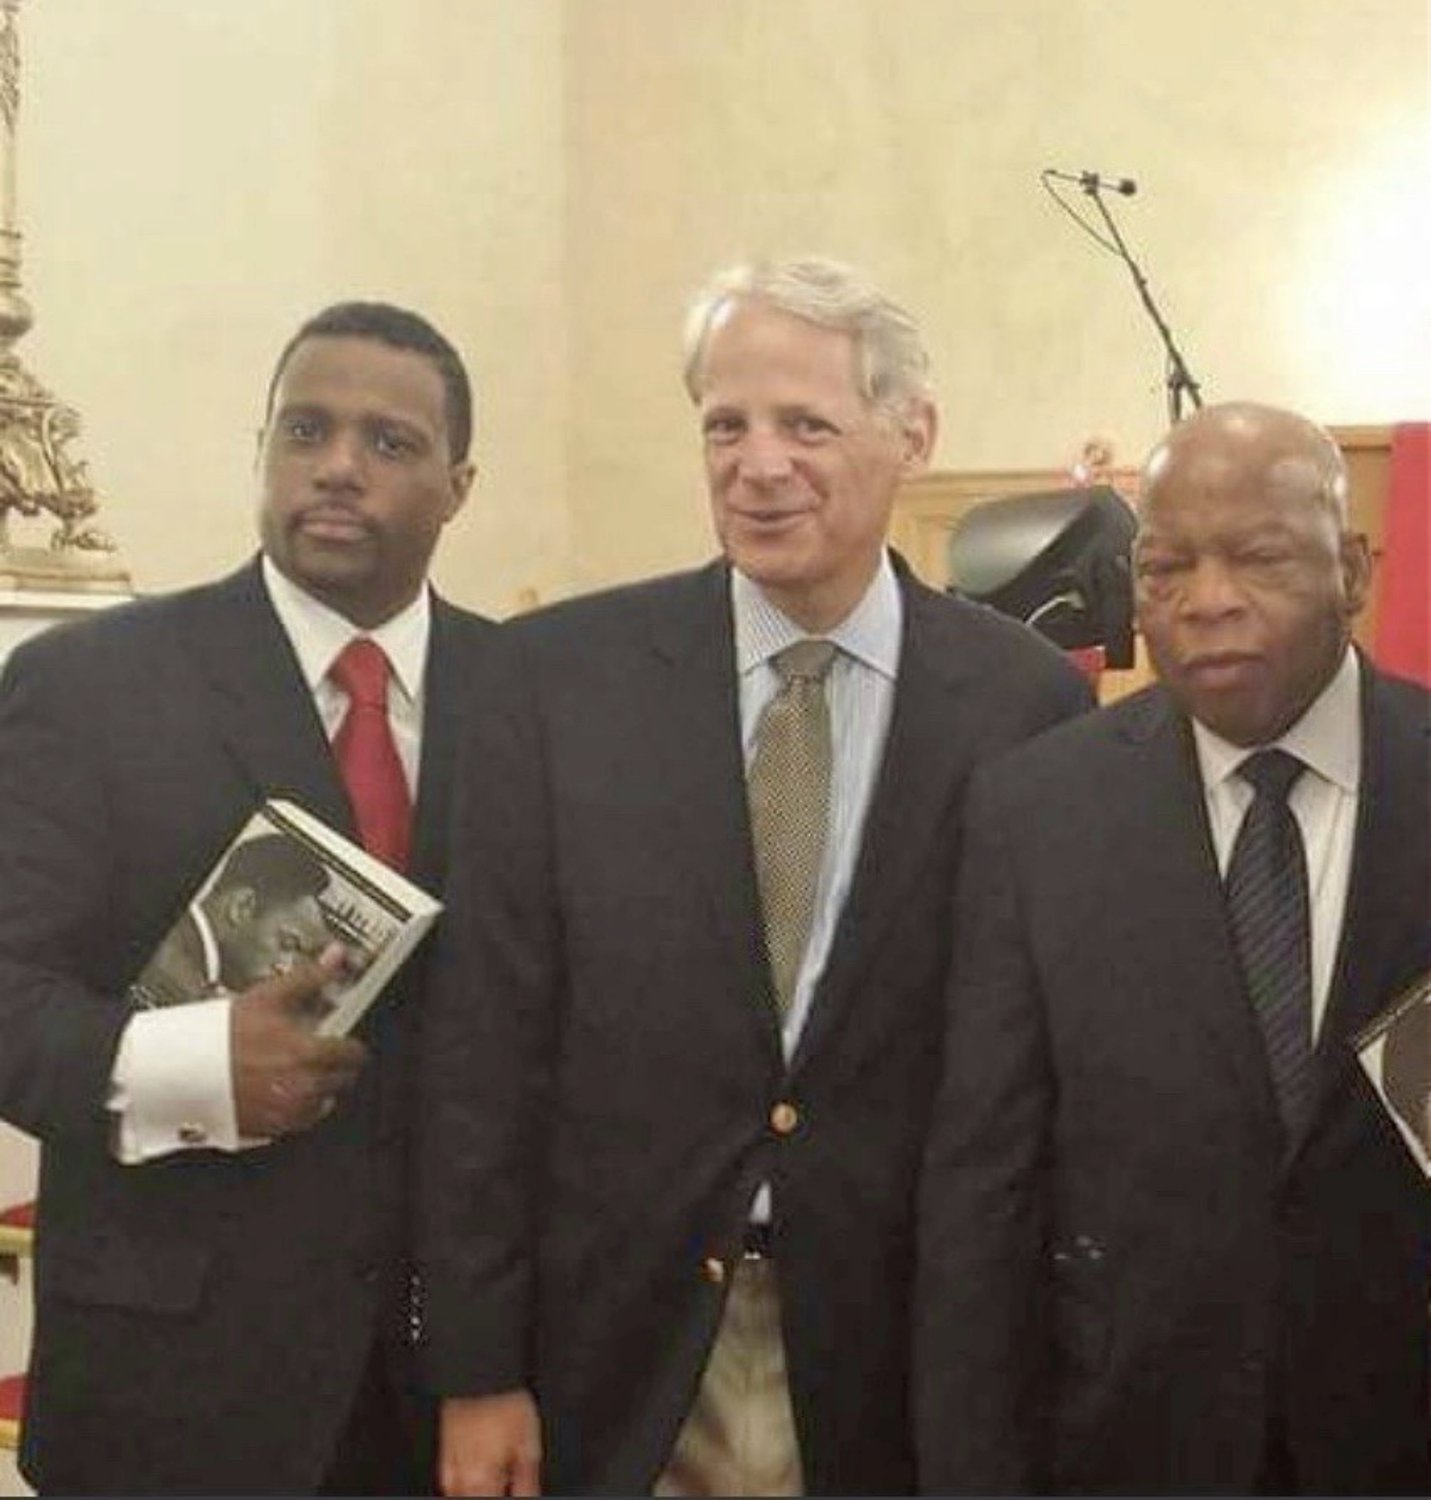 The Rev. Roger Williams, left, former U.S. Rep. Steve Israel and Rep. John Lewis at an event at First Baptist Church of Glen Cove in 2014.